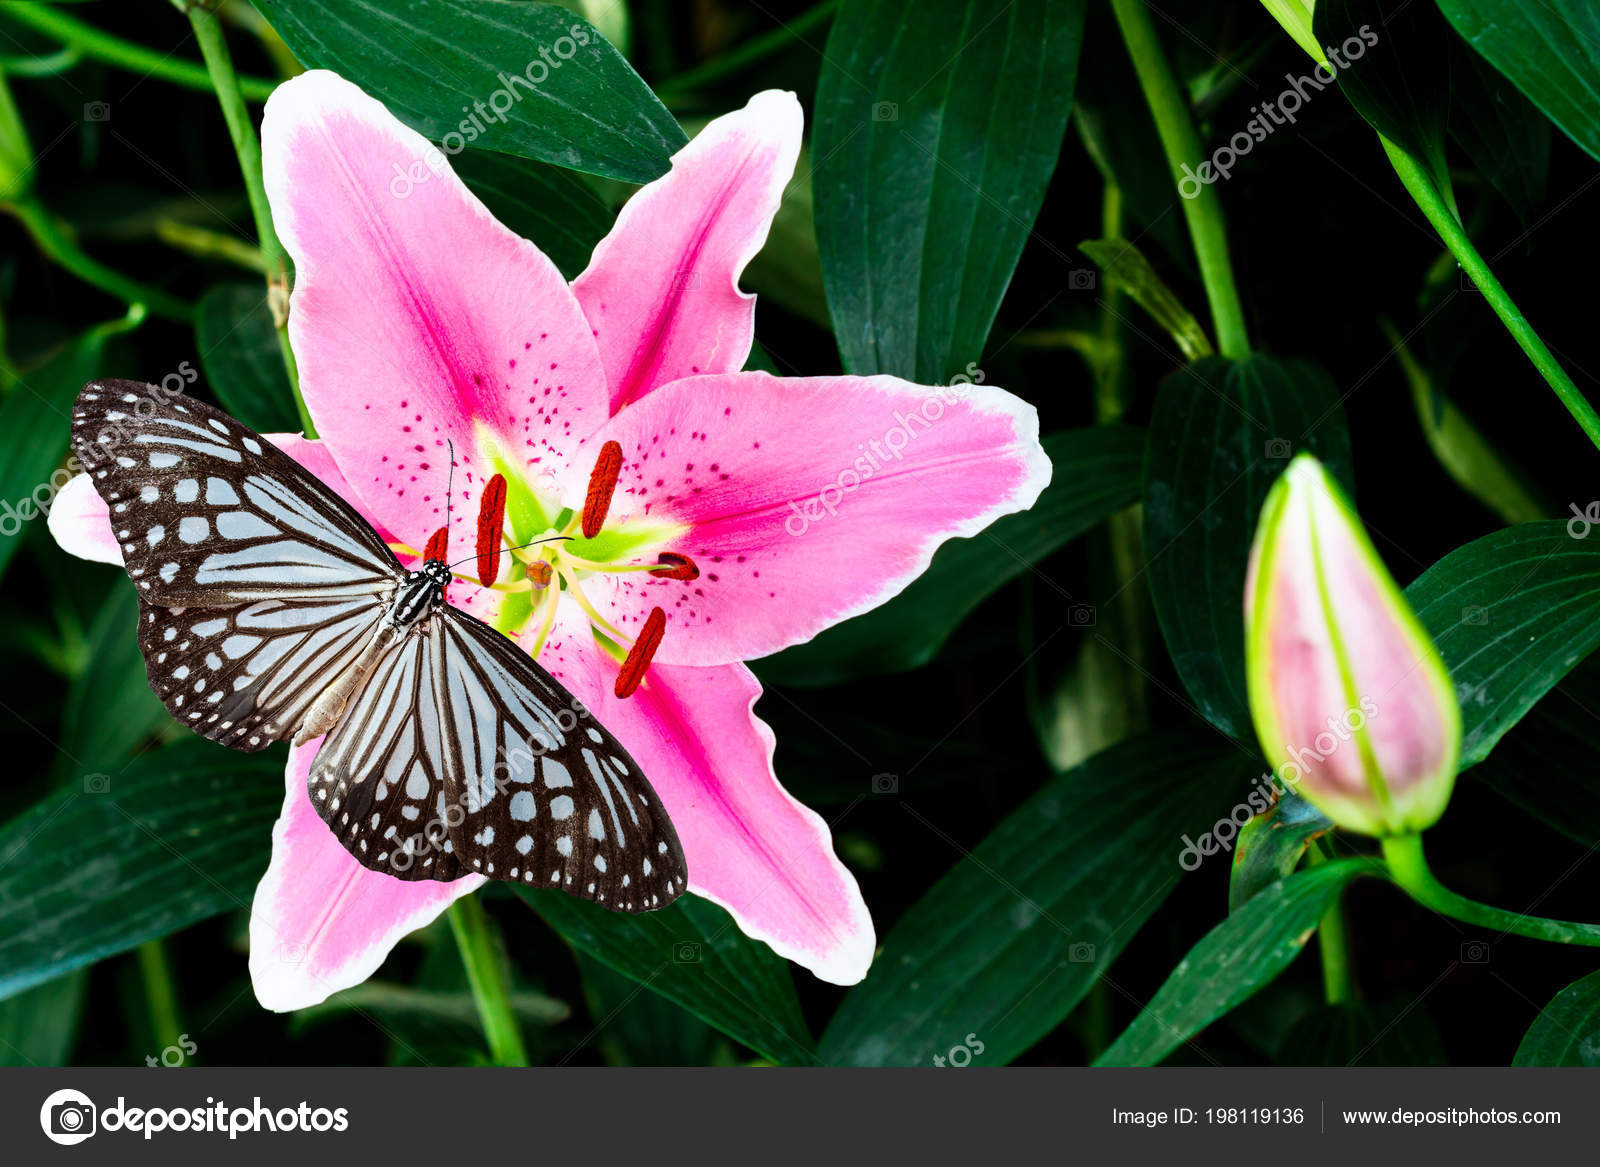 Pink lily flower butterfly green background stock photo pink lily flower butterfly green background stock photo izmirmasajfo